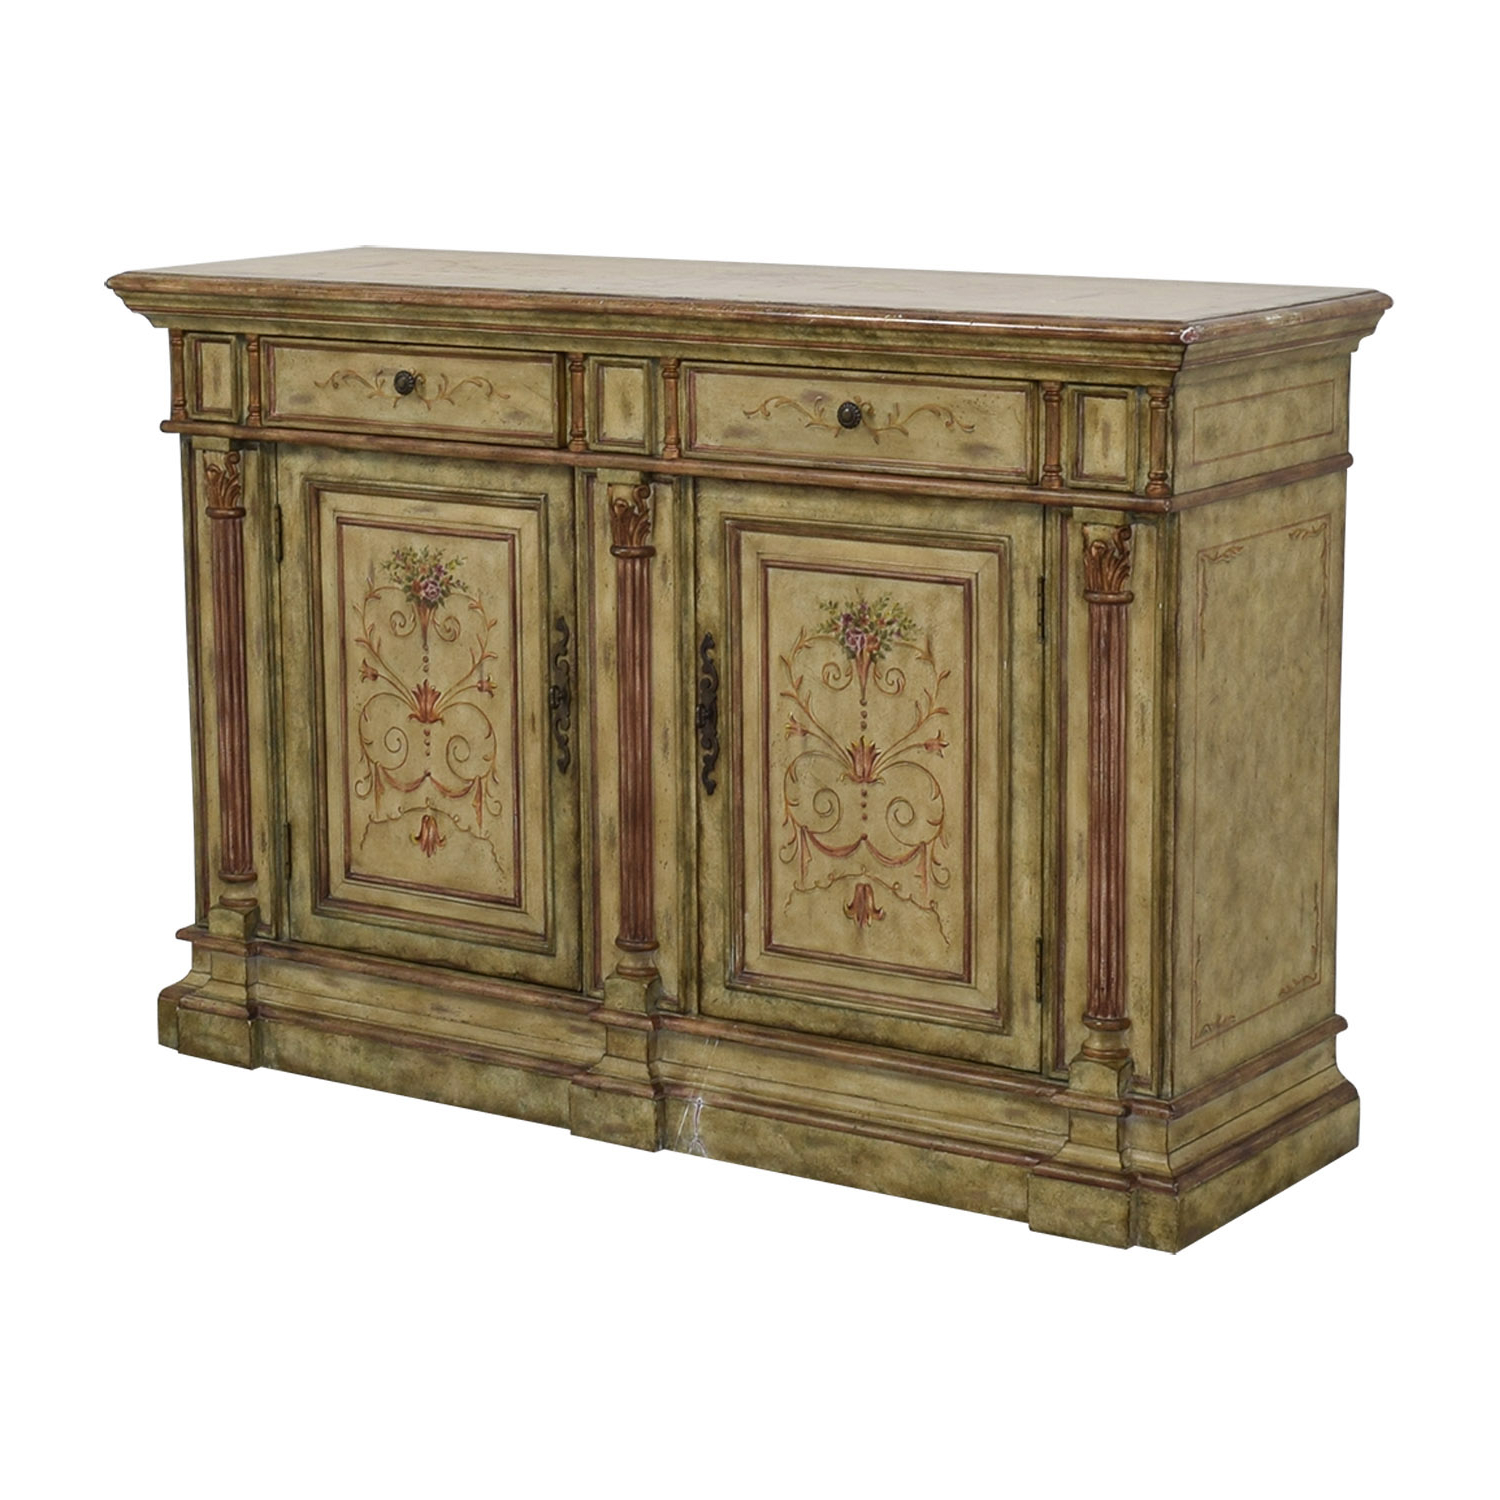 78% Off – Hooker Furniture Hooker Furniture Seven Seas Creme Scroll Painted Sideboard / Storage Throughout Seven Seas Asian Sideboards (View 9 of 20)